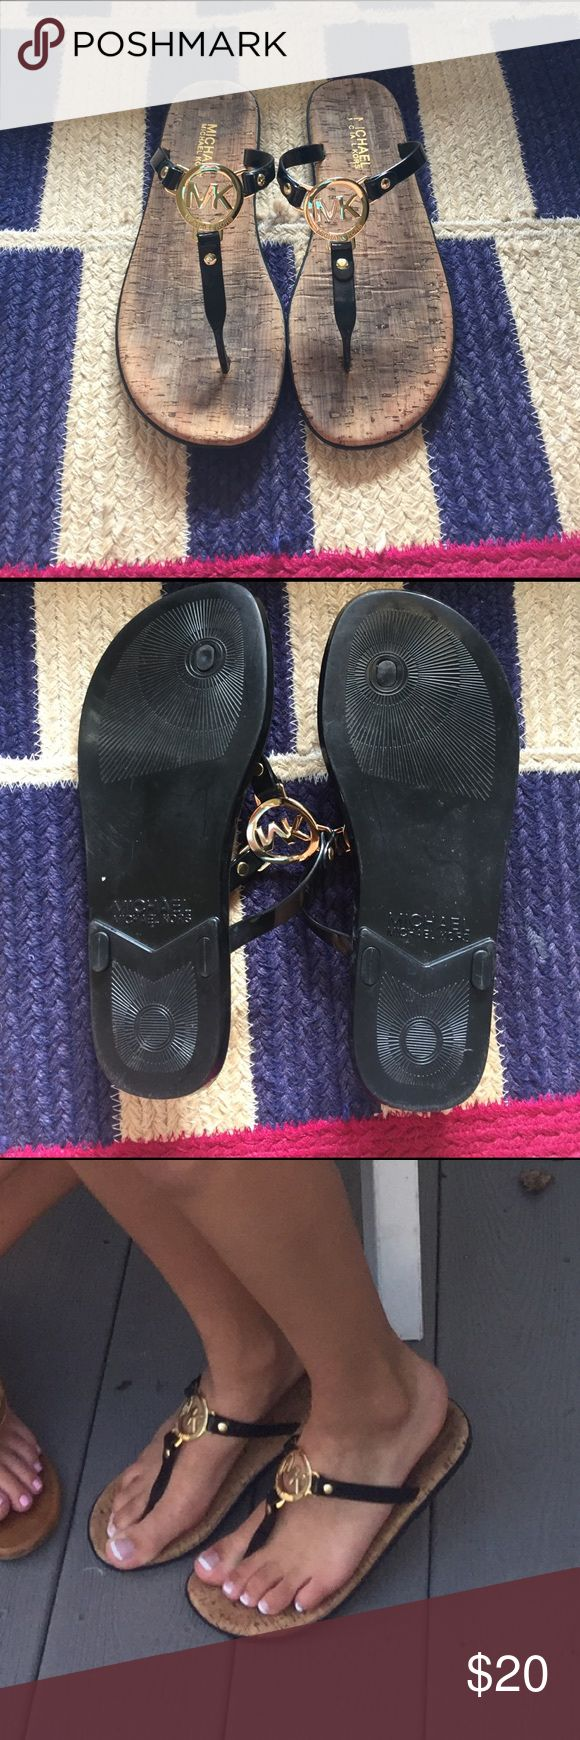 Michael Kors Dressy Flip Flops! These are real Michael Kors flip flops puchased from Nordstrom. Size 8 women's. Great condition, cork is discolored a bit from wear. Feel free to leave offer. MICHAEL Michael Kors Shoes Sandals